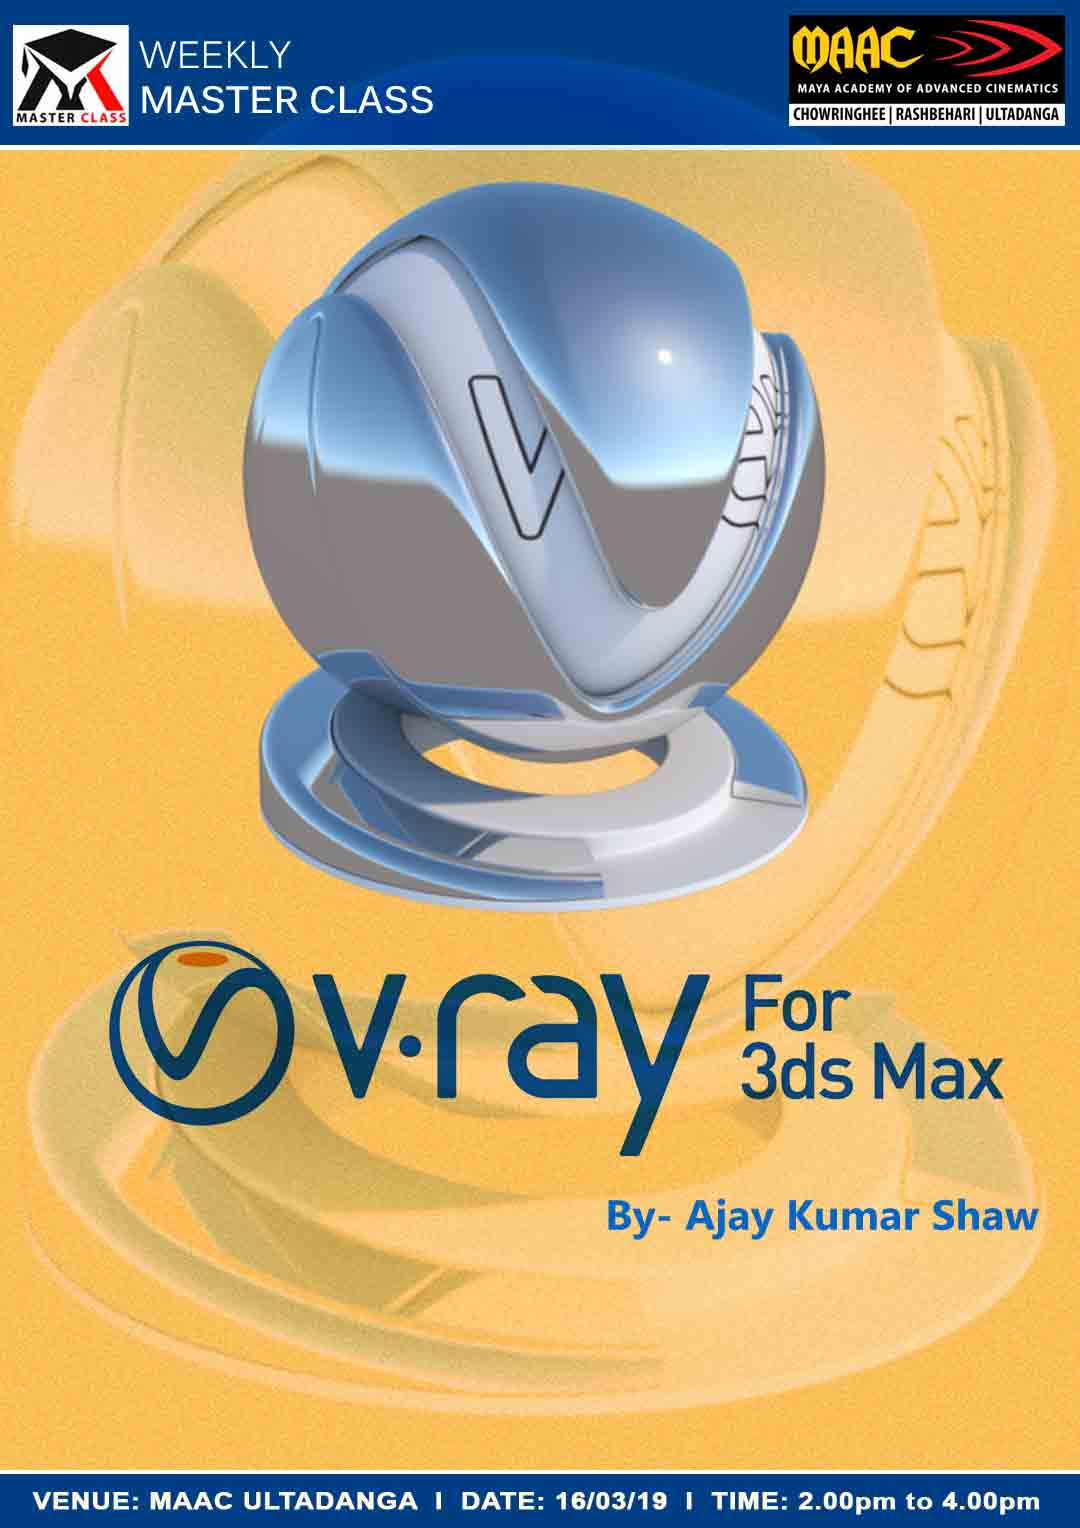 Weekly Master Class on V-Ray for 3ds Max